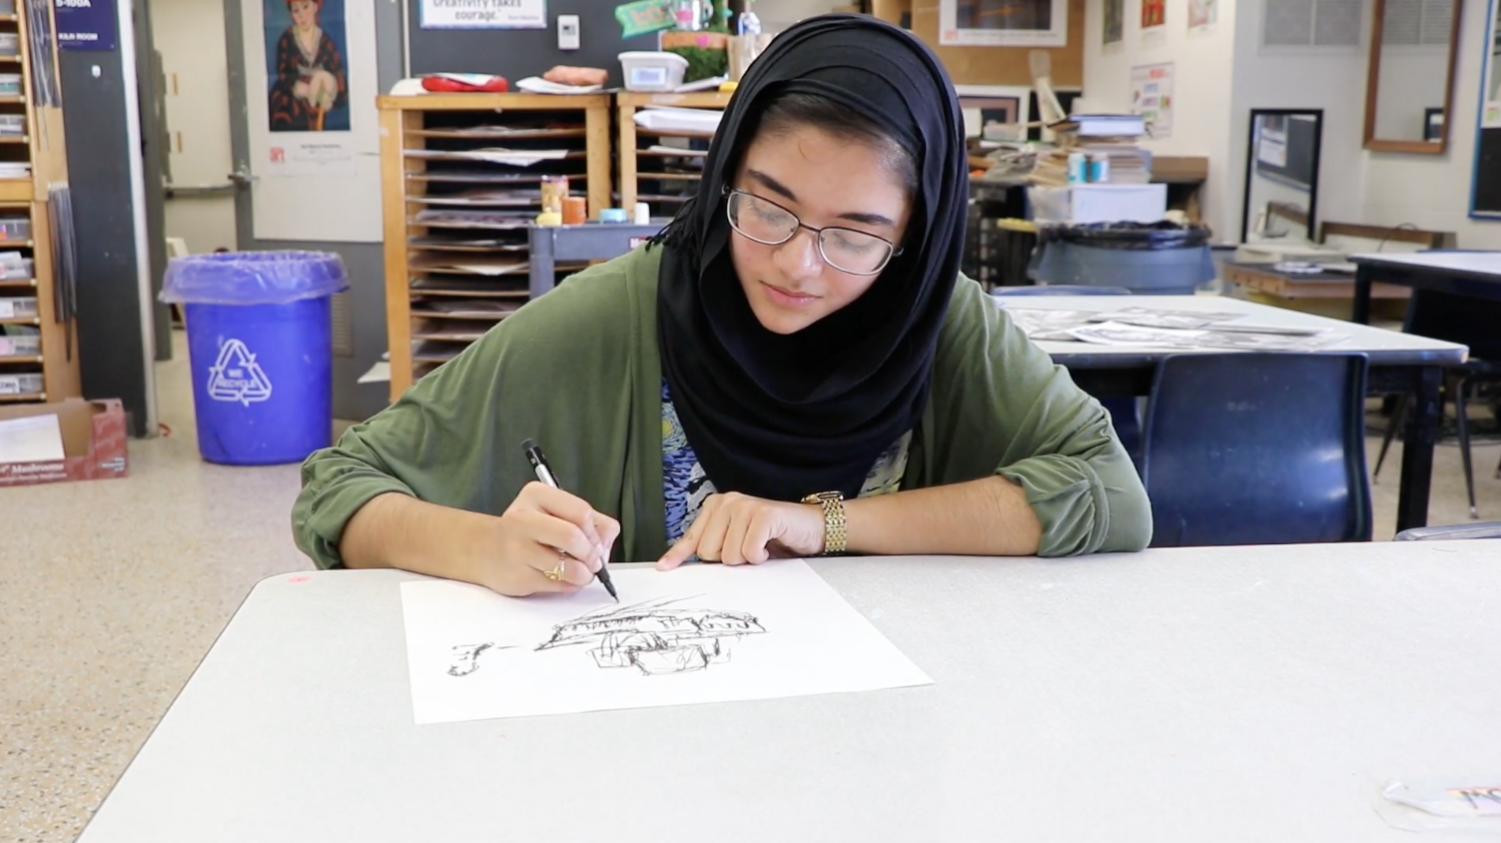 Senior Minaal Mushid has displayed an uncanny artistic ability, with her work being selected for display at the state fair exhibition.